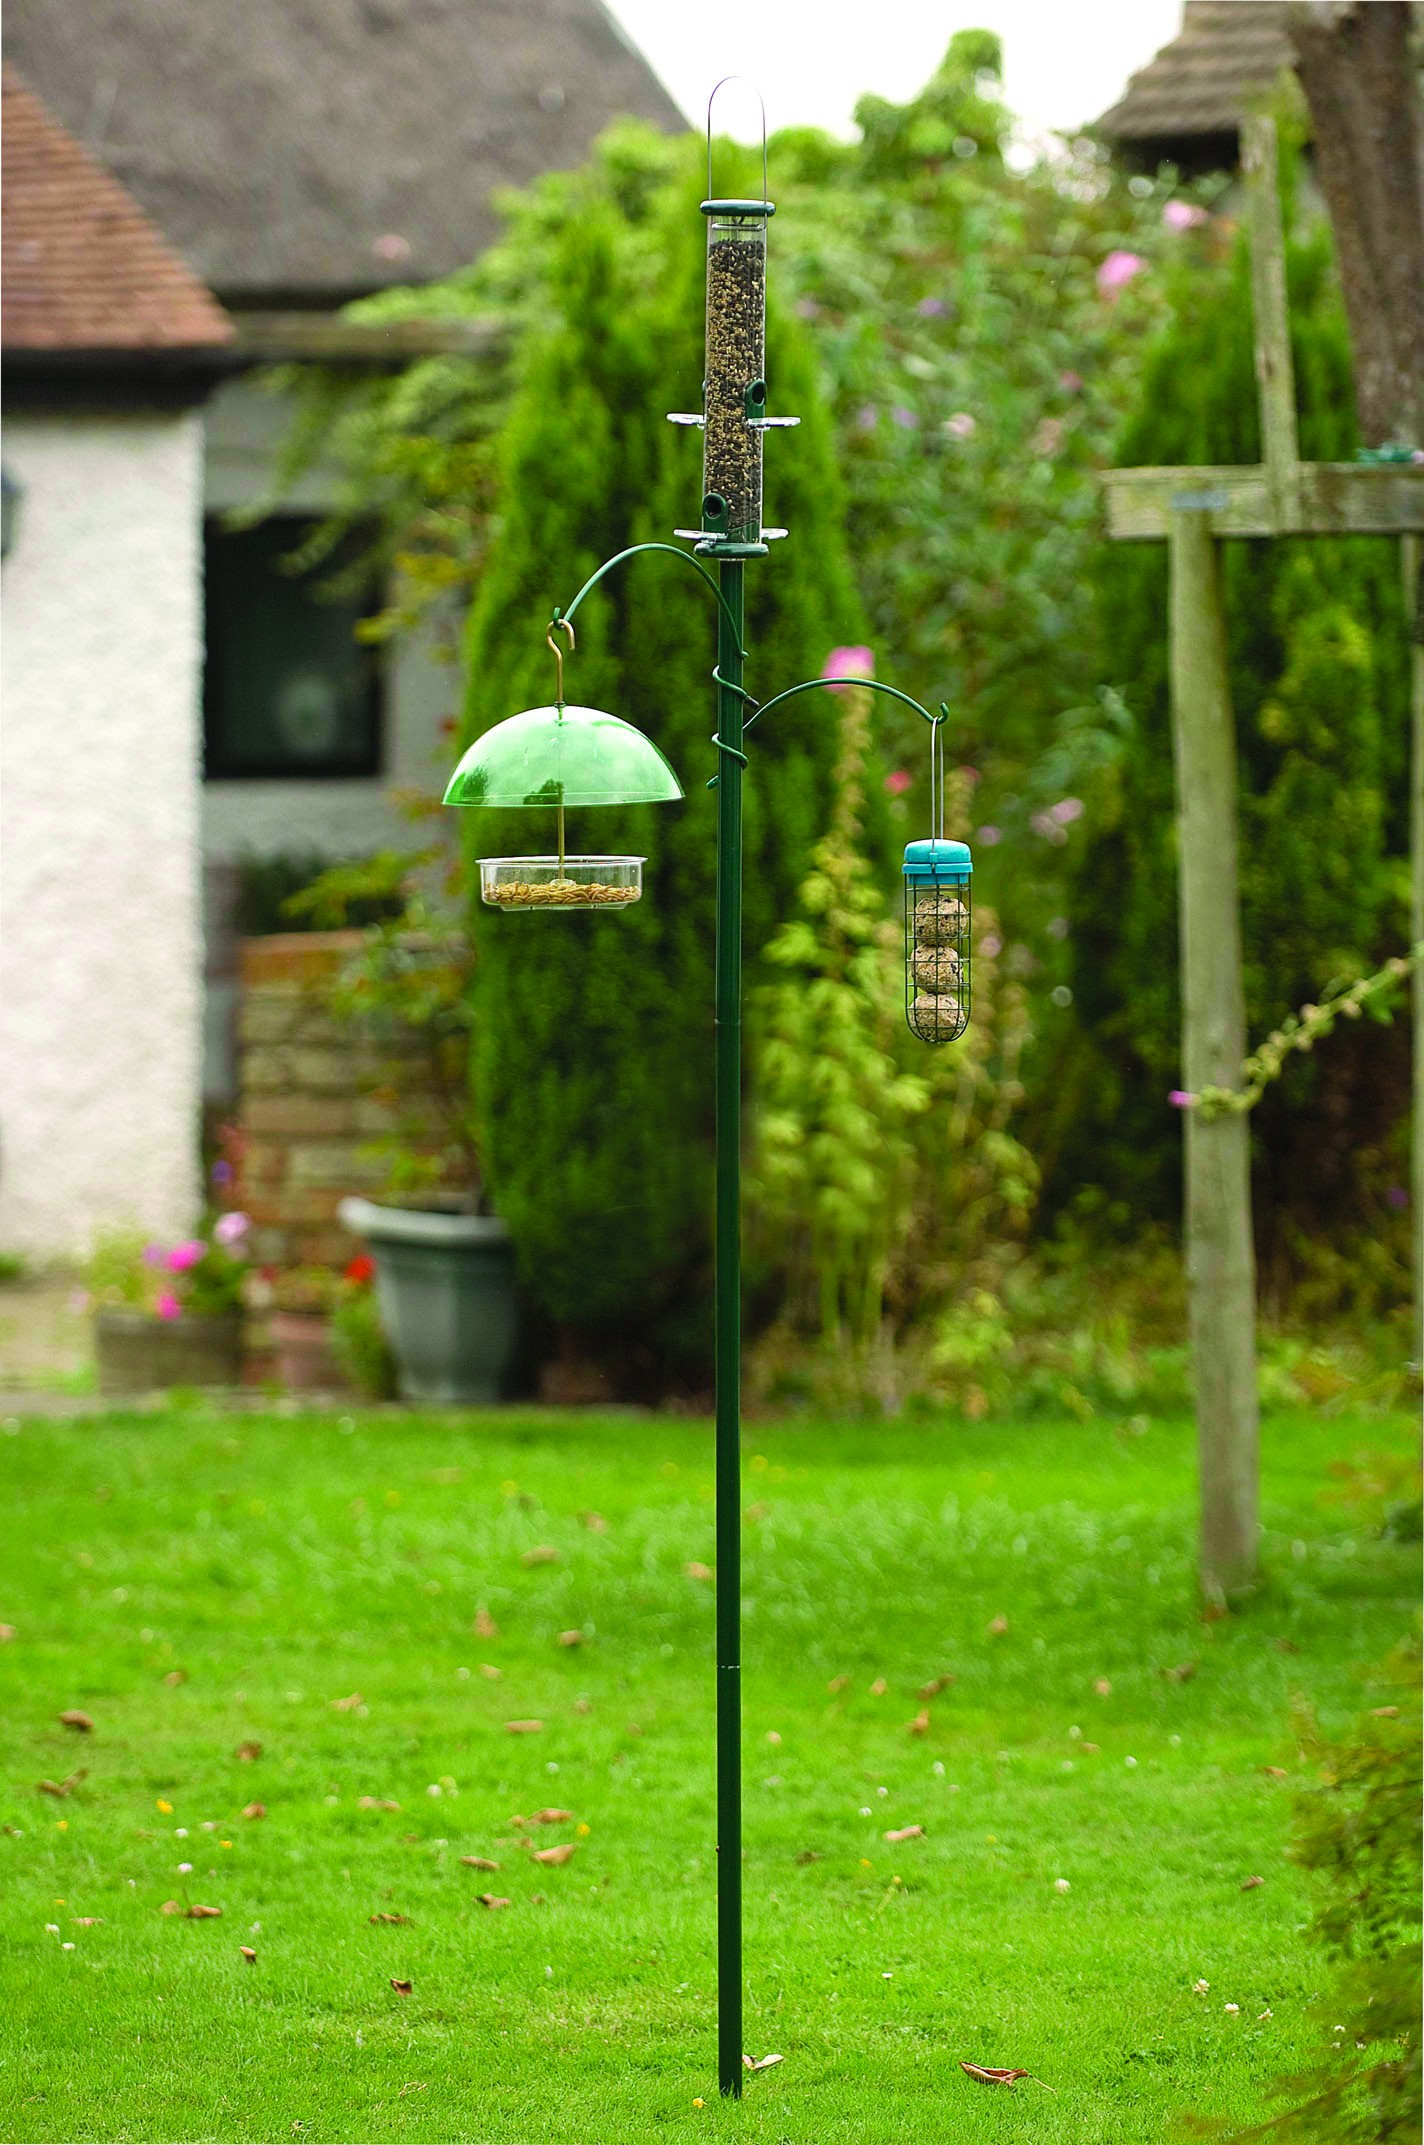 garden decor recycled theglassygardengal yard unique glass pin cycled bird com catcher up art feeder sun repurposed